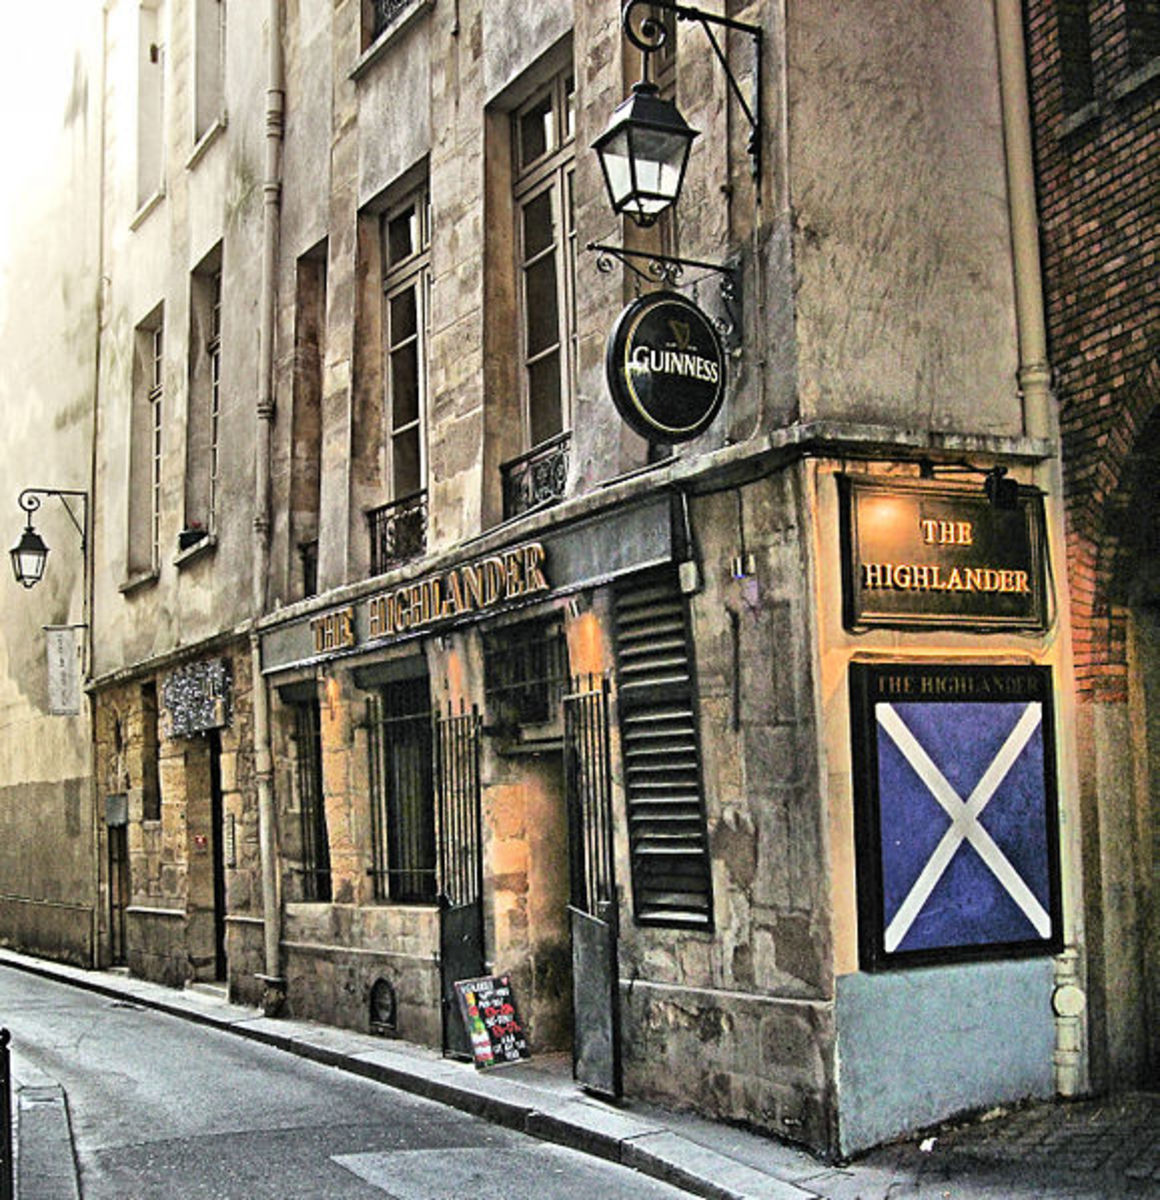 The Highlander Scottish Pub (I know)